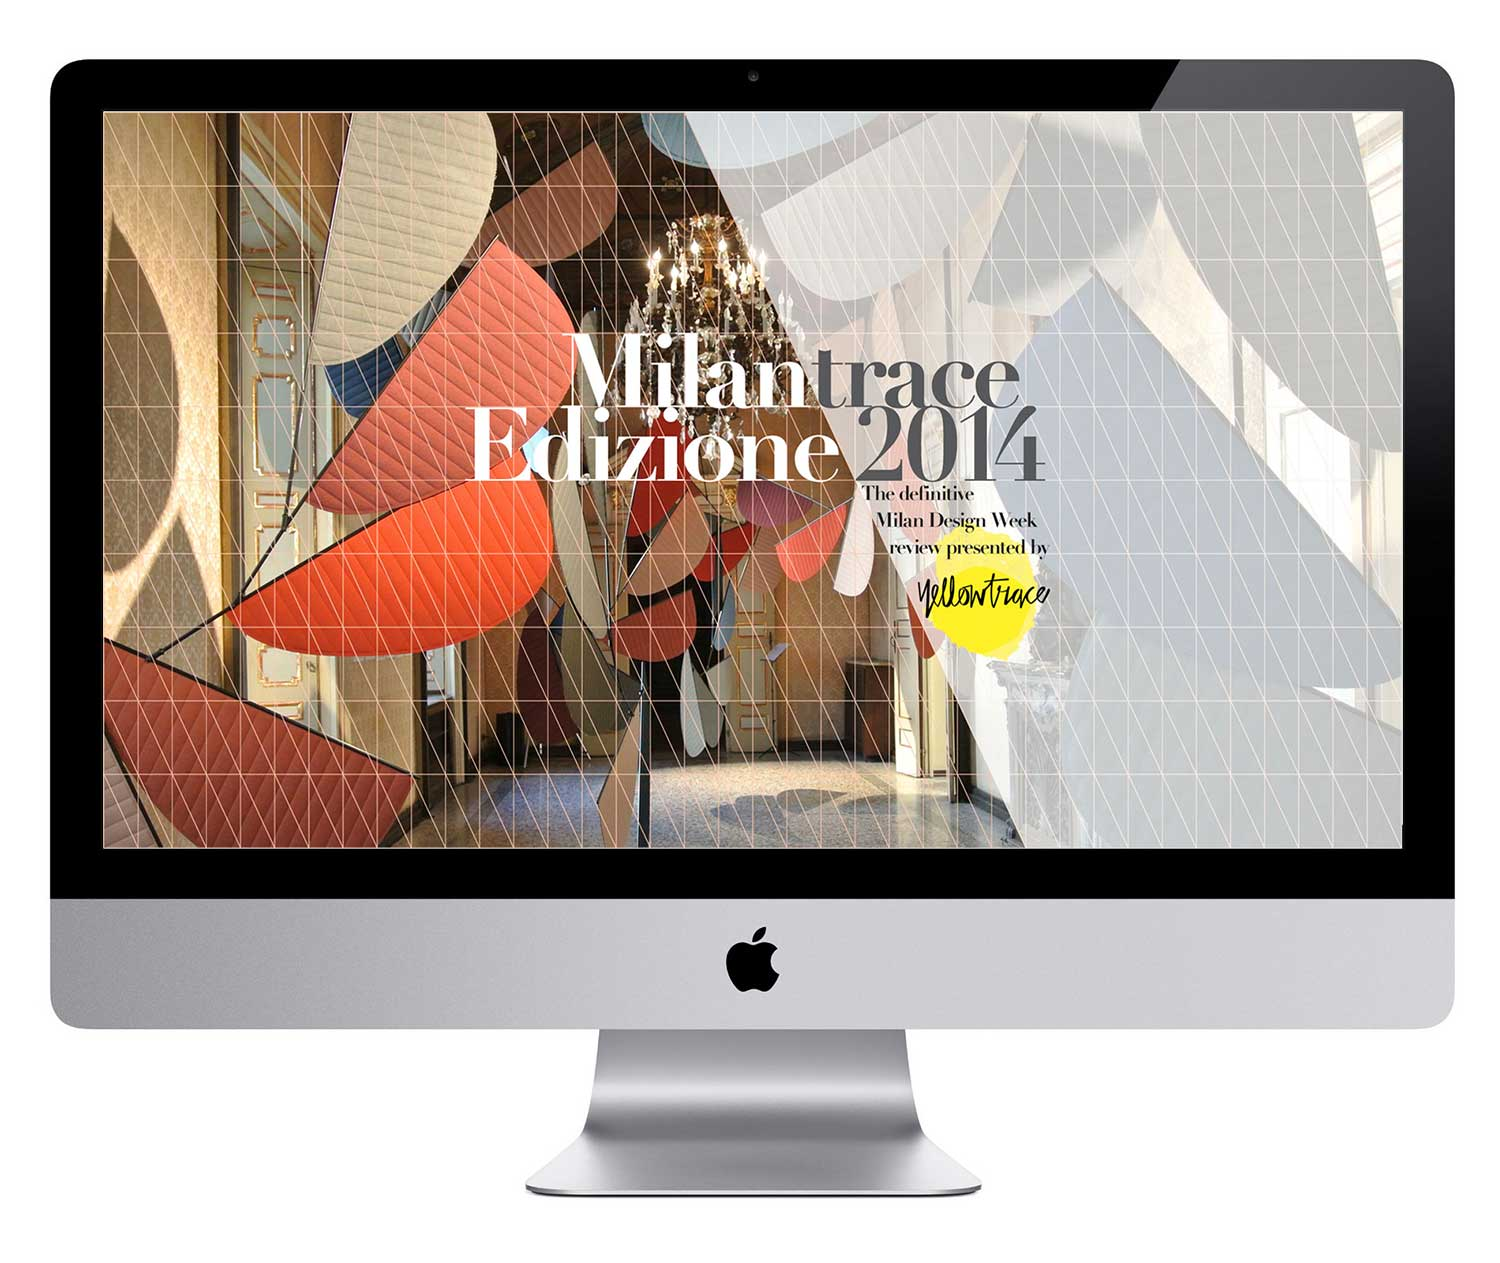 MILANTRACE Edizione 2014, Milan Design Week 2014, Salone del Mobile #MDW14 Fuorisaloni Presented by Yellowtrace.